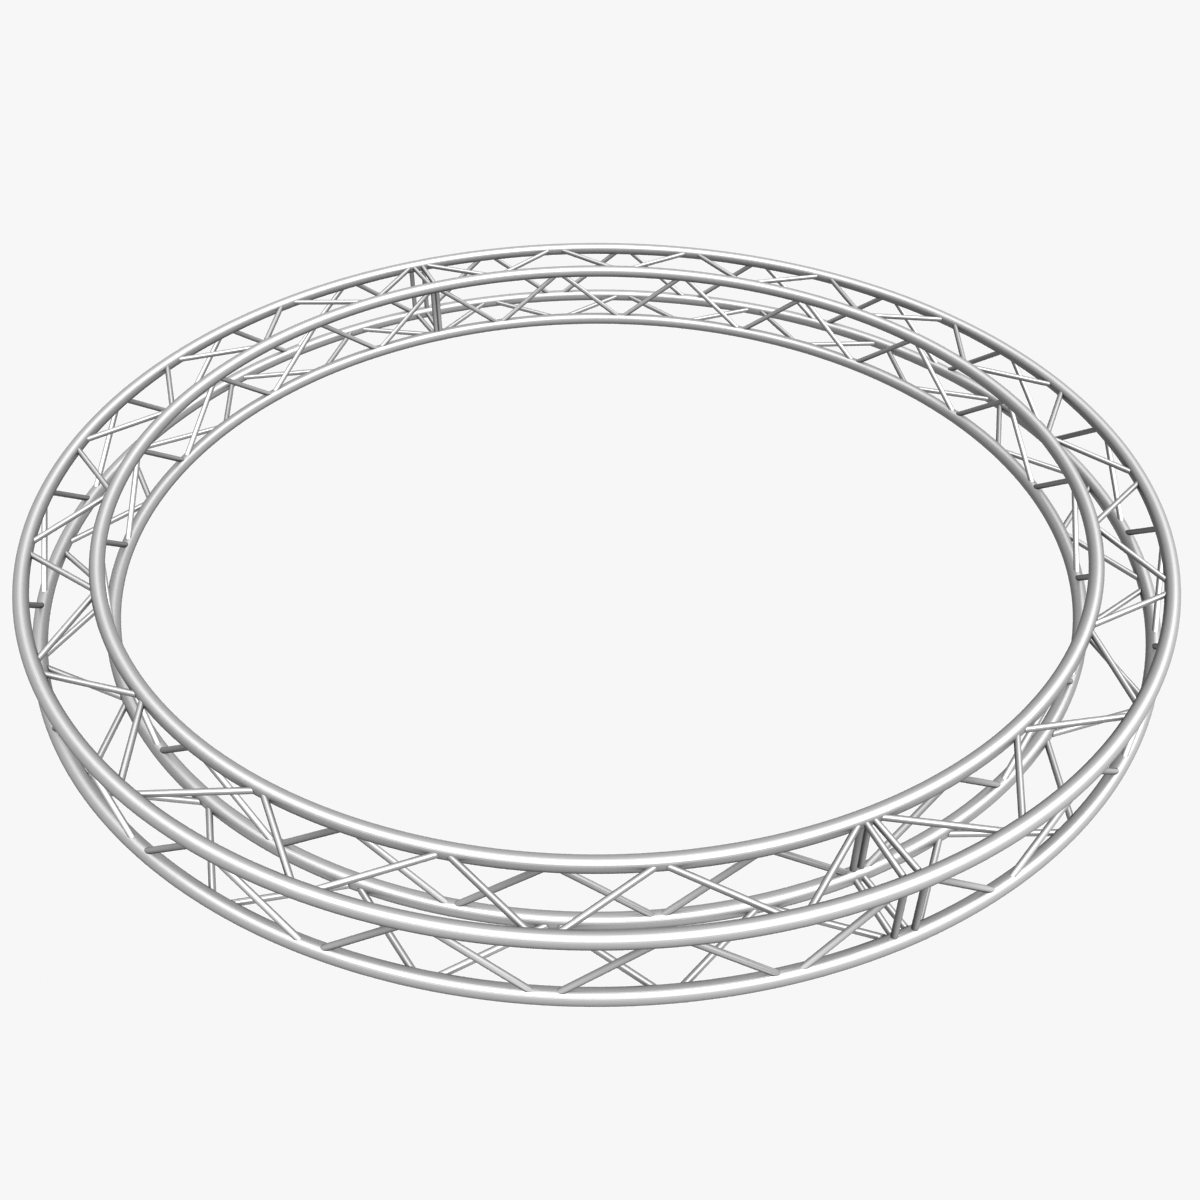 circle square truss (400cm) 3d model max fbx obj 218632